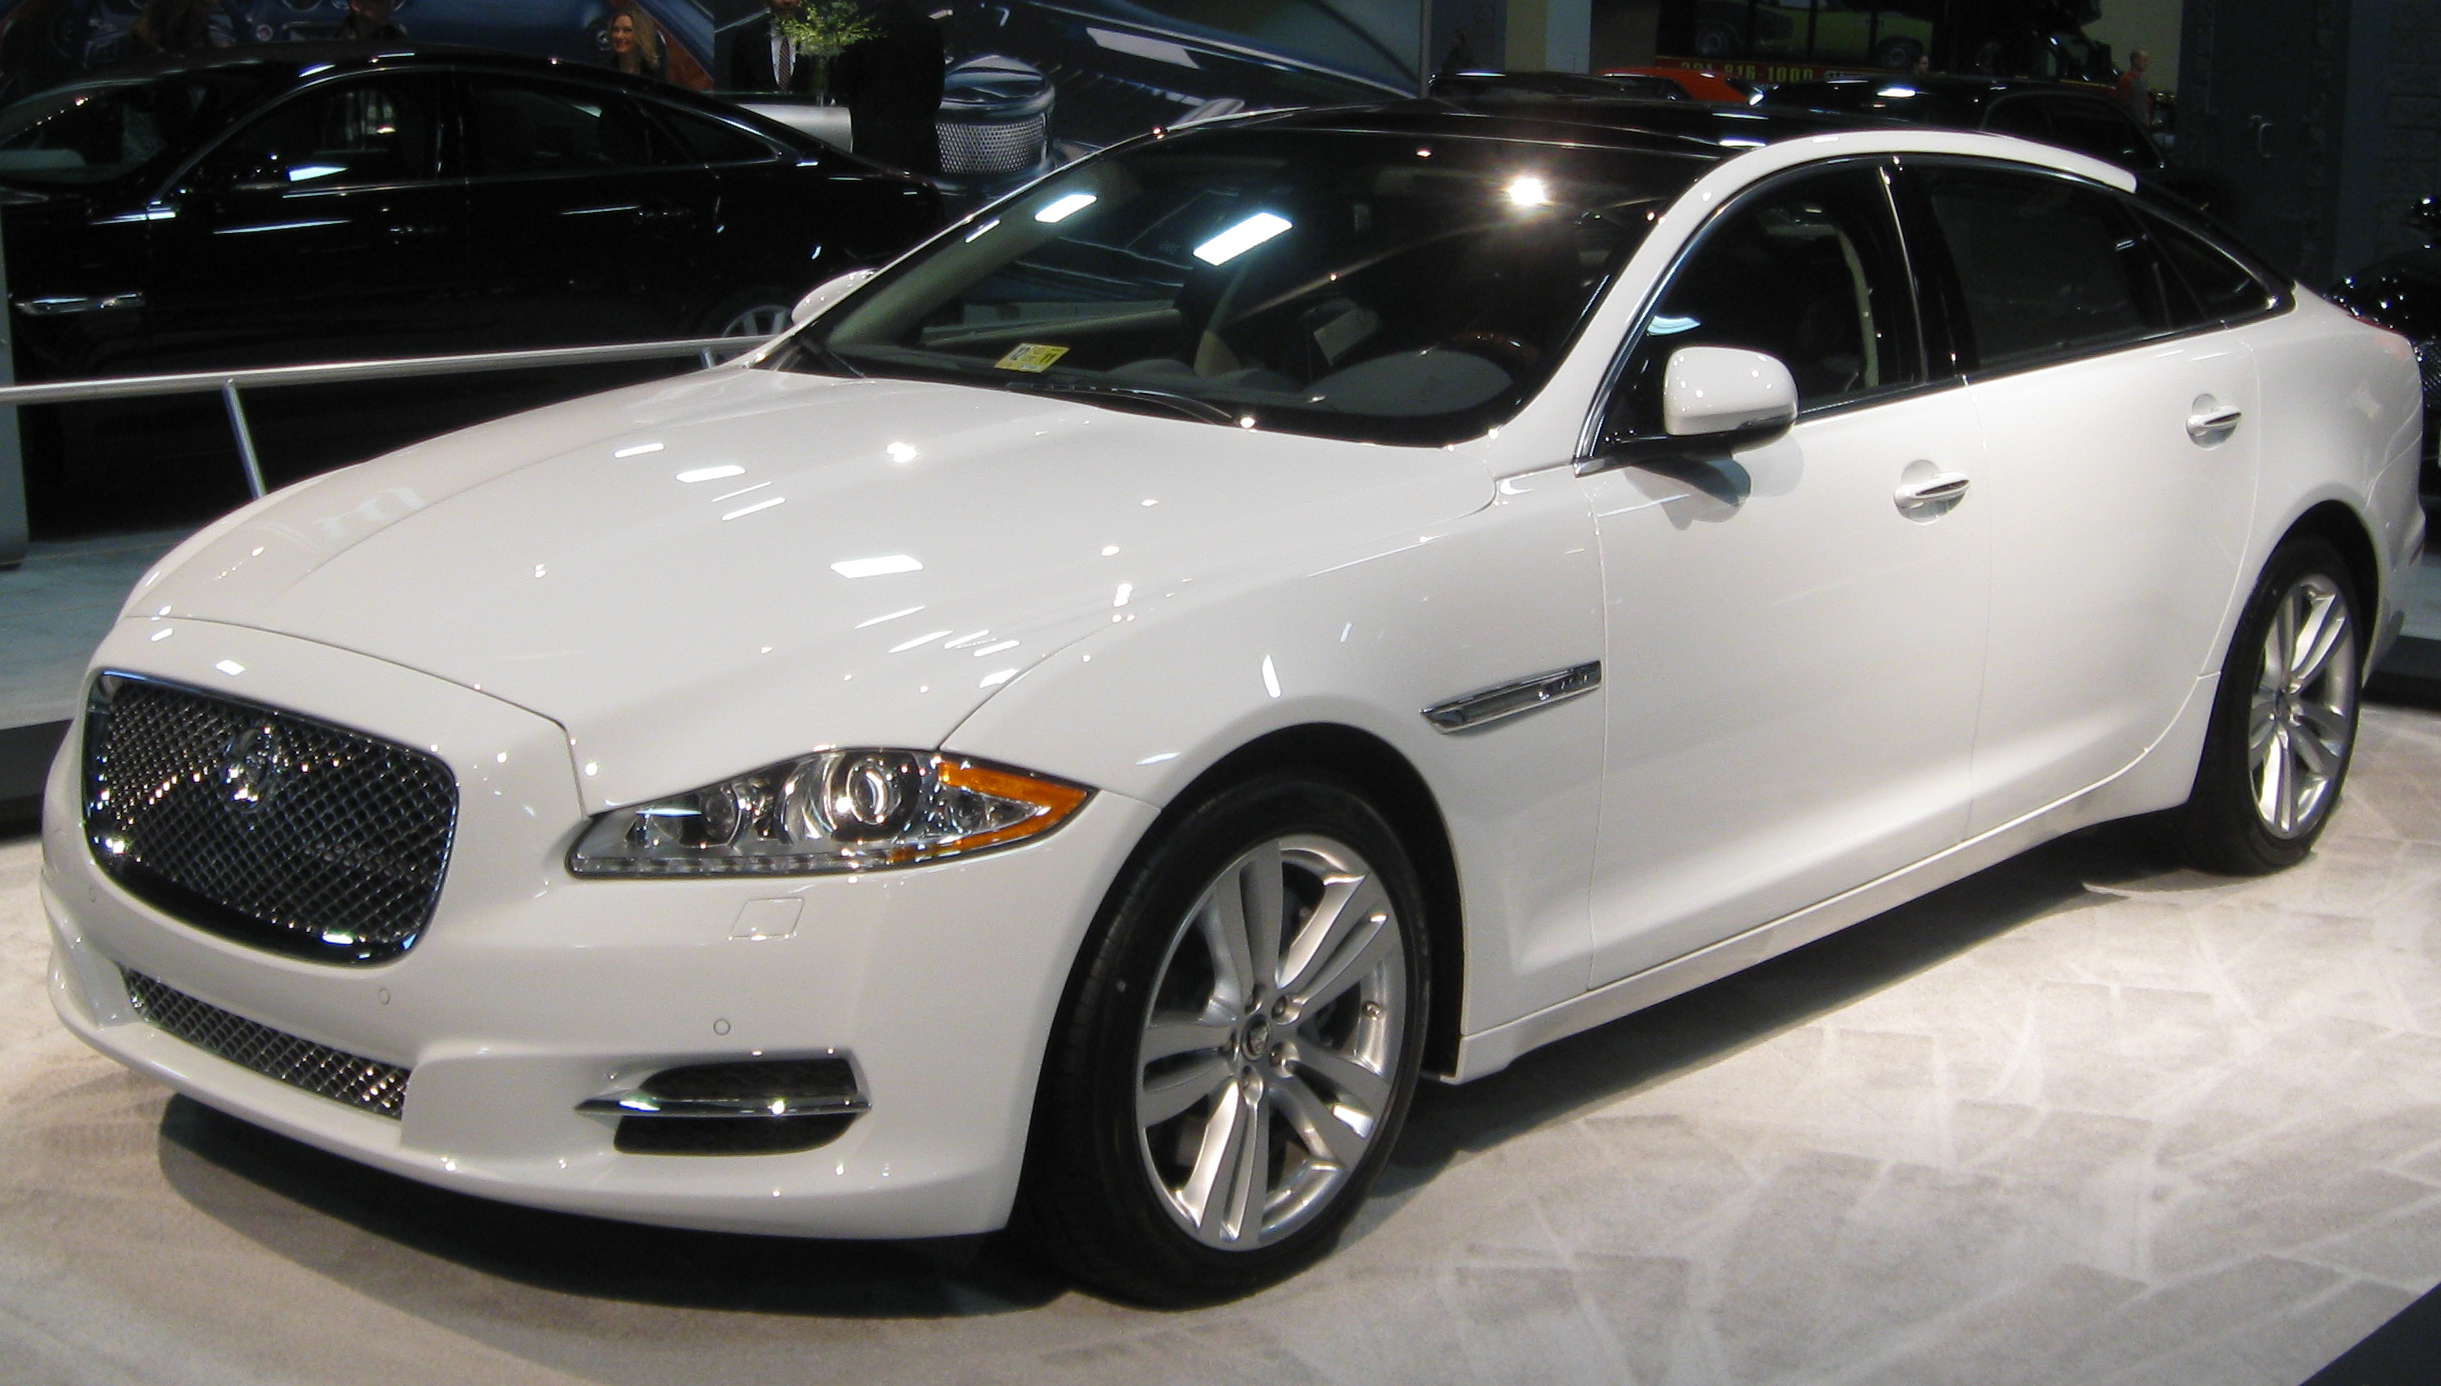 File:2011 Jaguar XJ8 L -- 2011 DC.jpg - Wikipedia